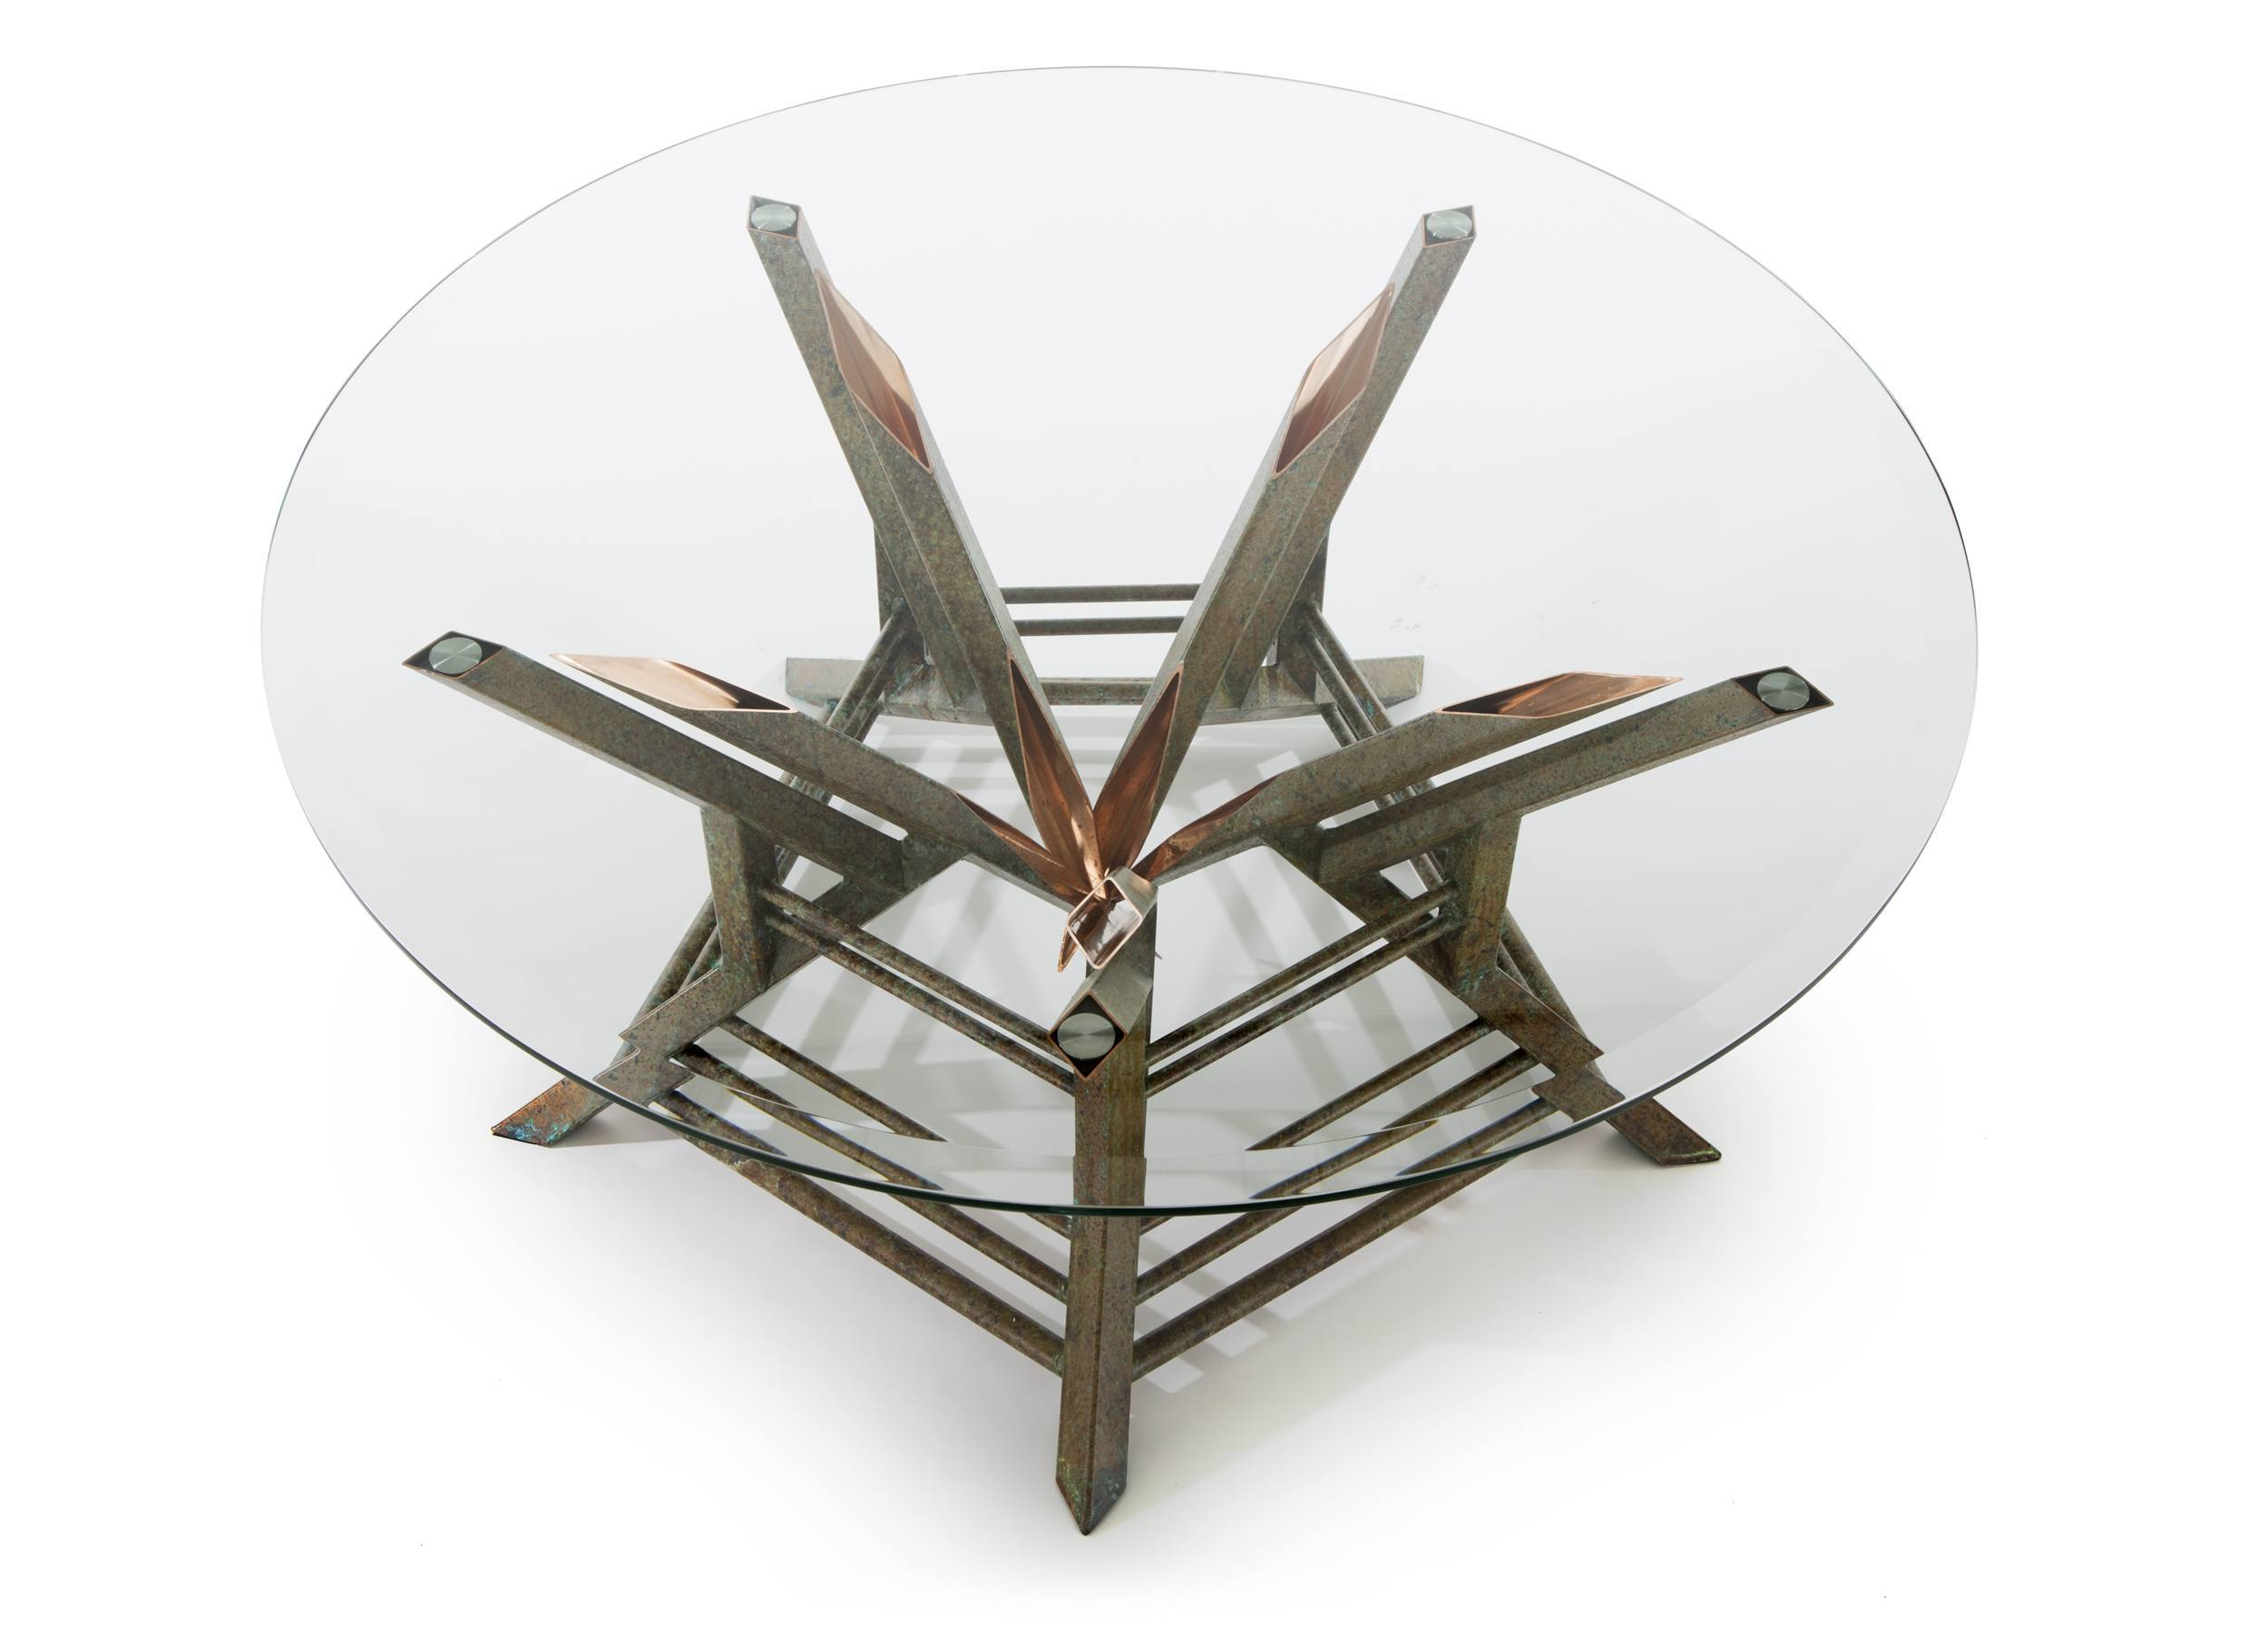 custom coffee table - copper tables by Scott Yocco